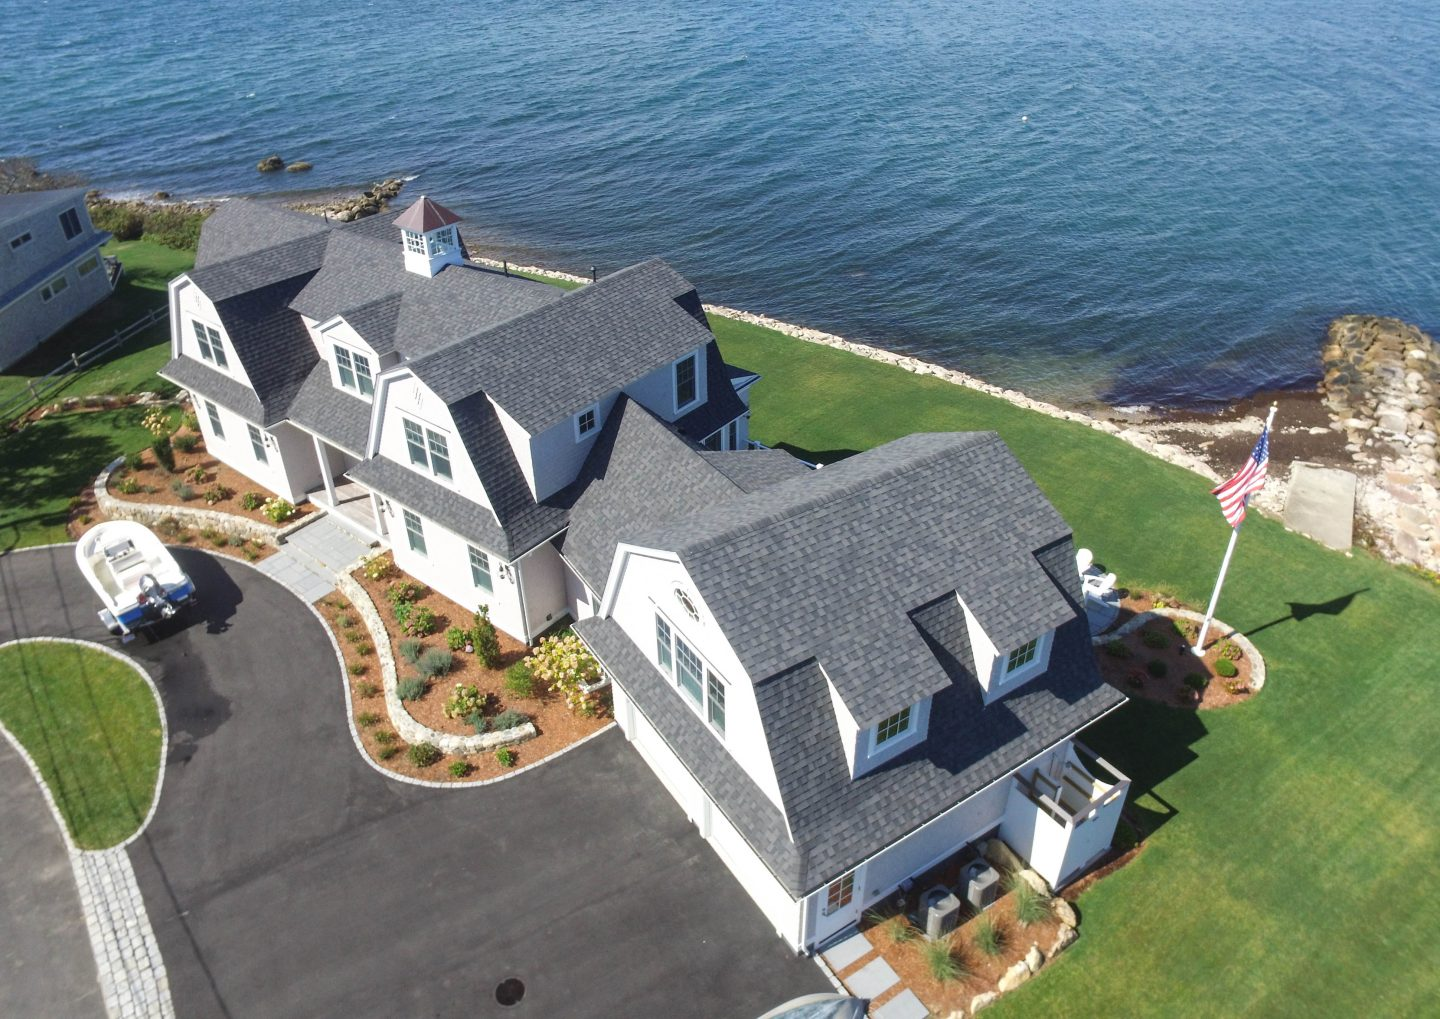 Waterfront home drone picture showing driveway and extensive gardens